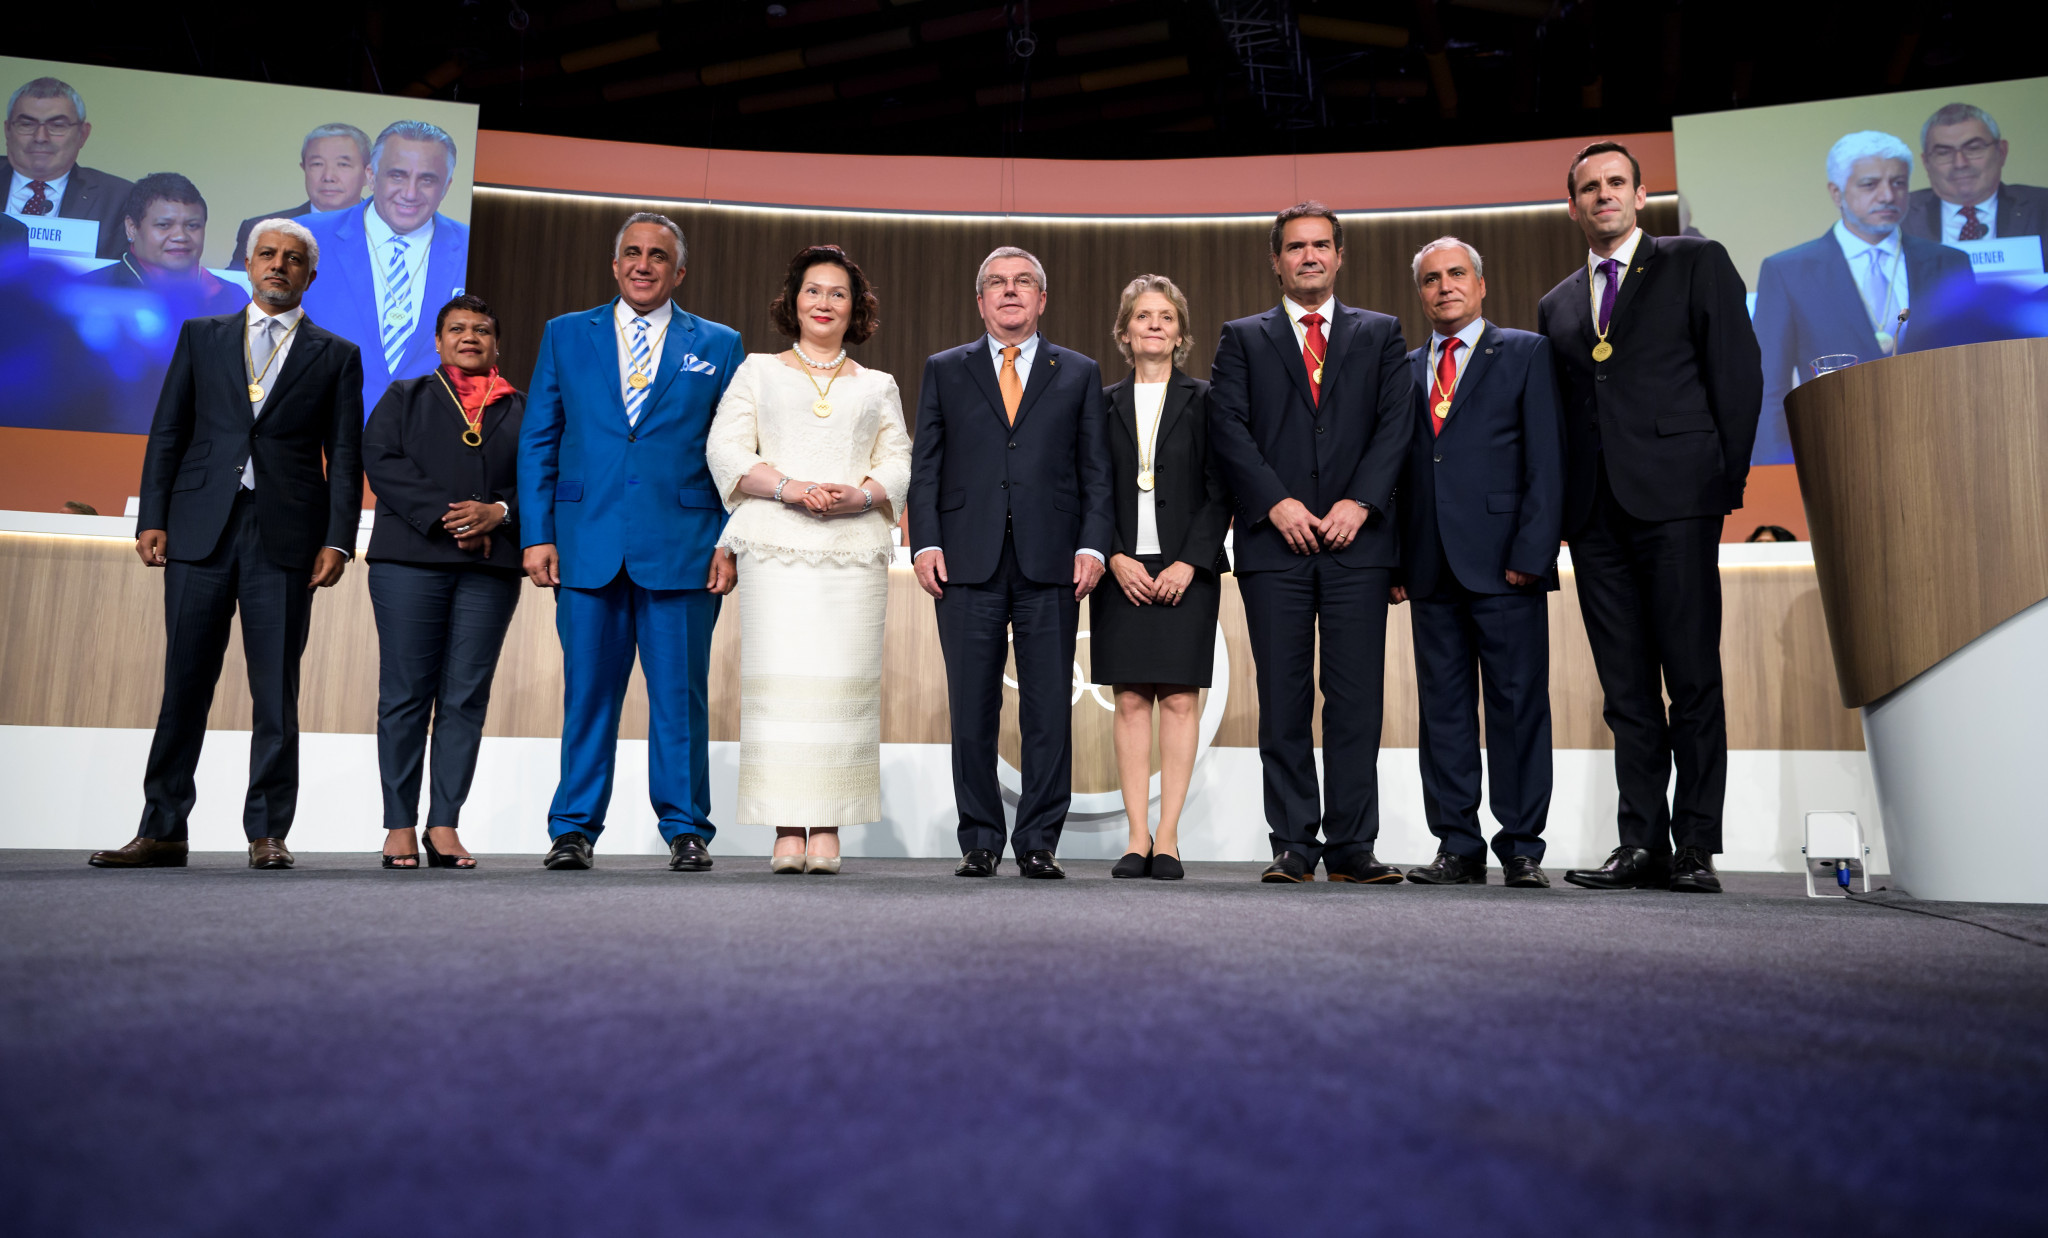 Luis Mejía Oviedo, third from left, became an International Olympic Committee member in 2017 ©Getty Images